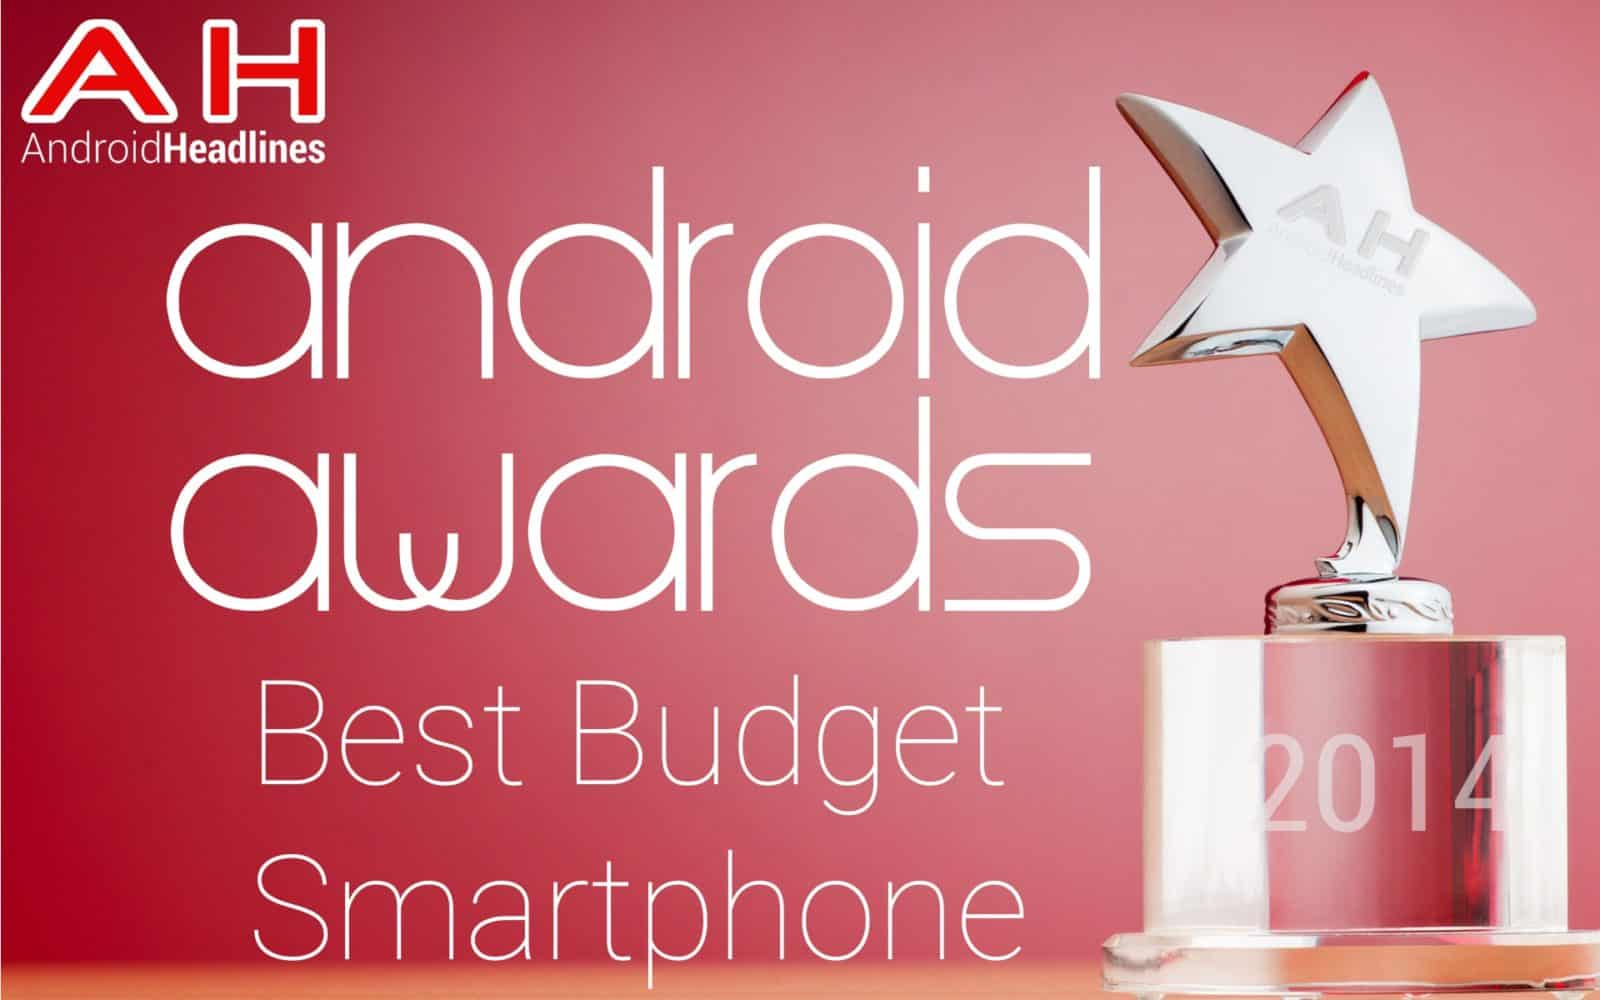 AH Awards 2014 - Best Budget Android Smartphone of the year